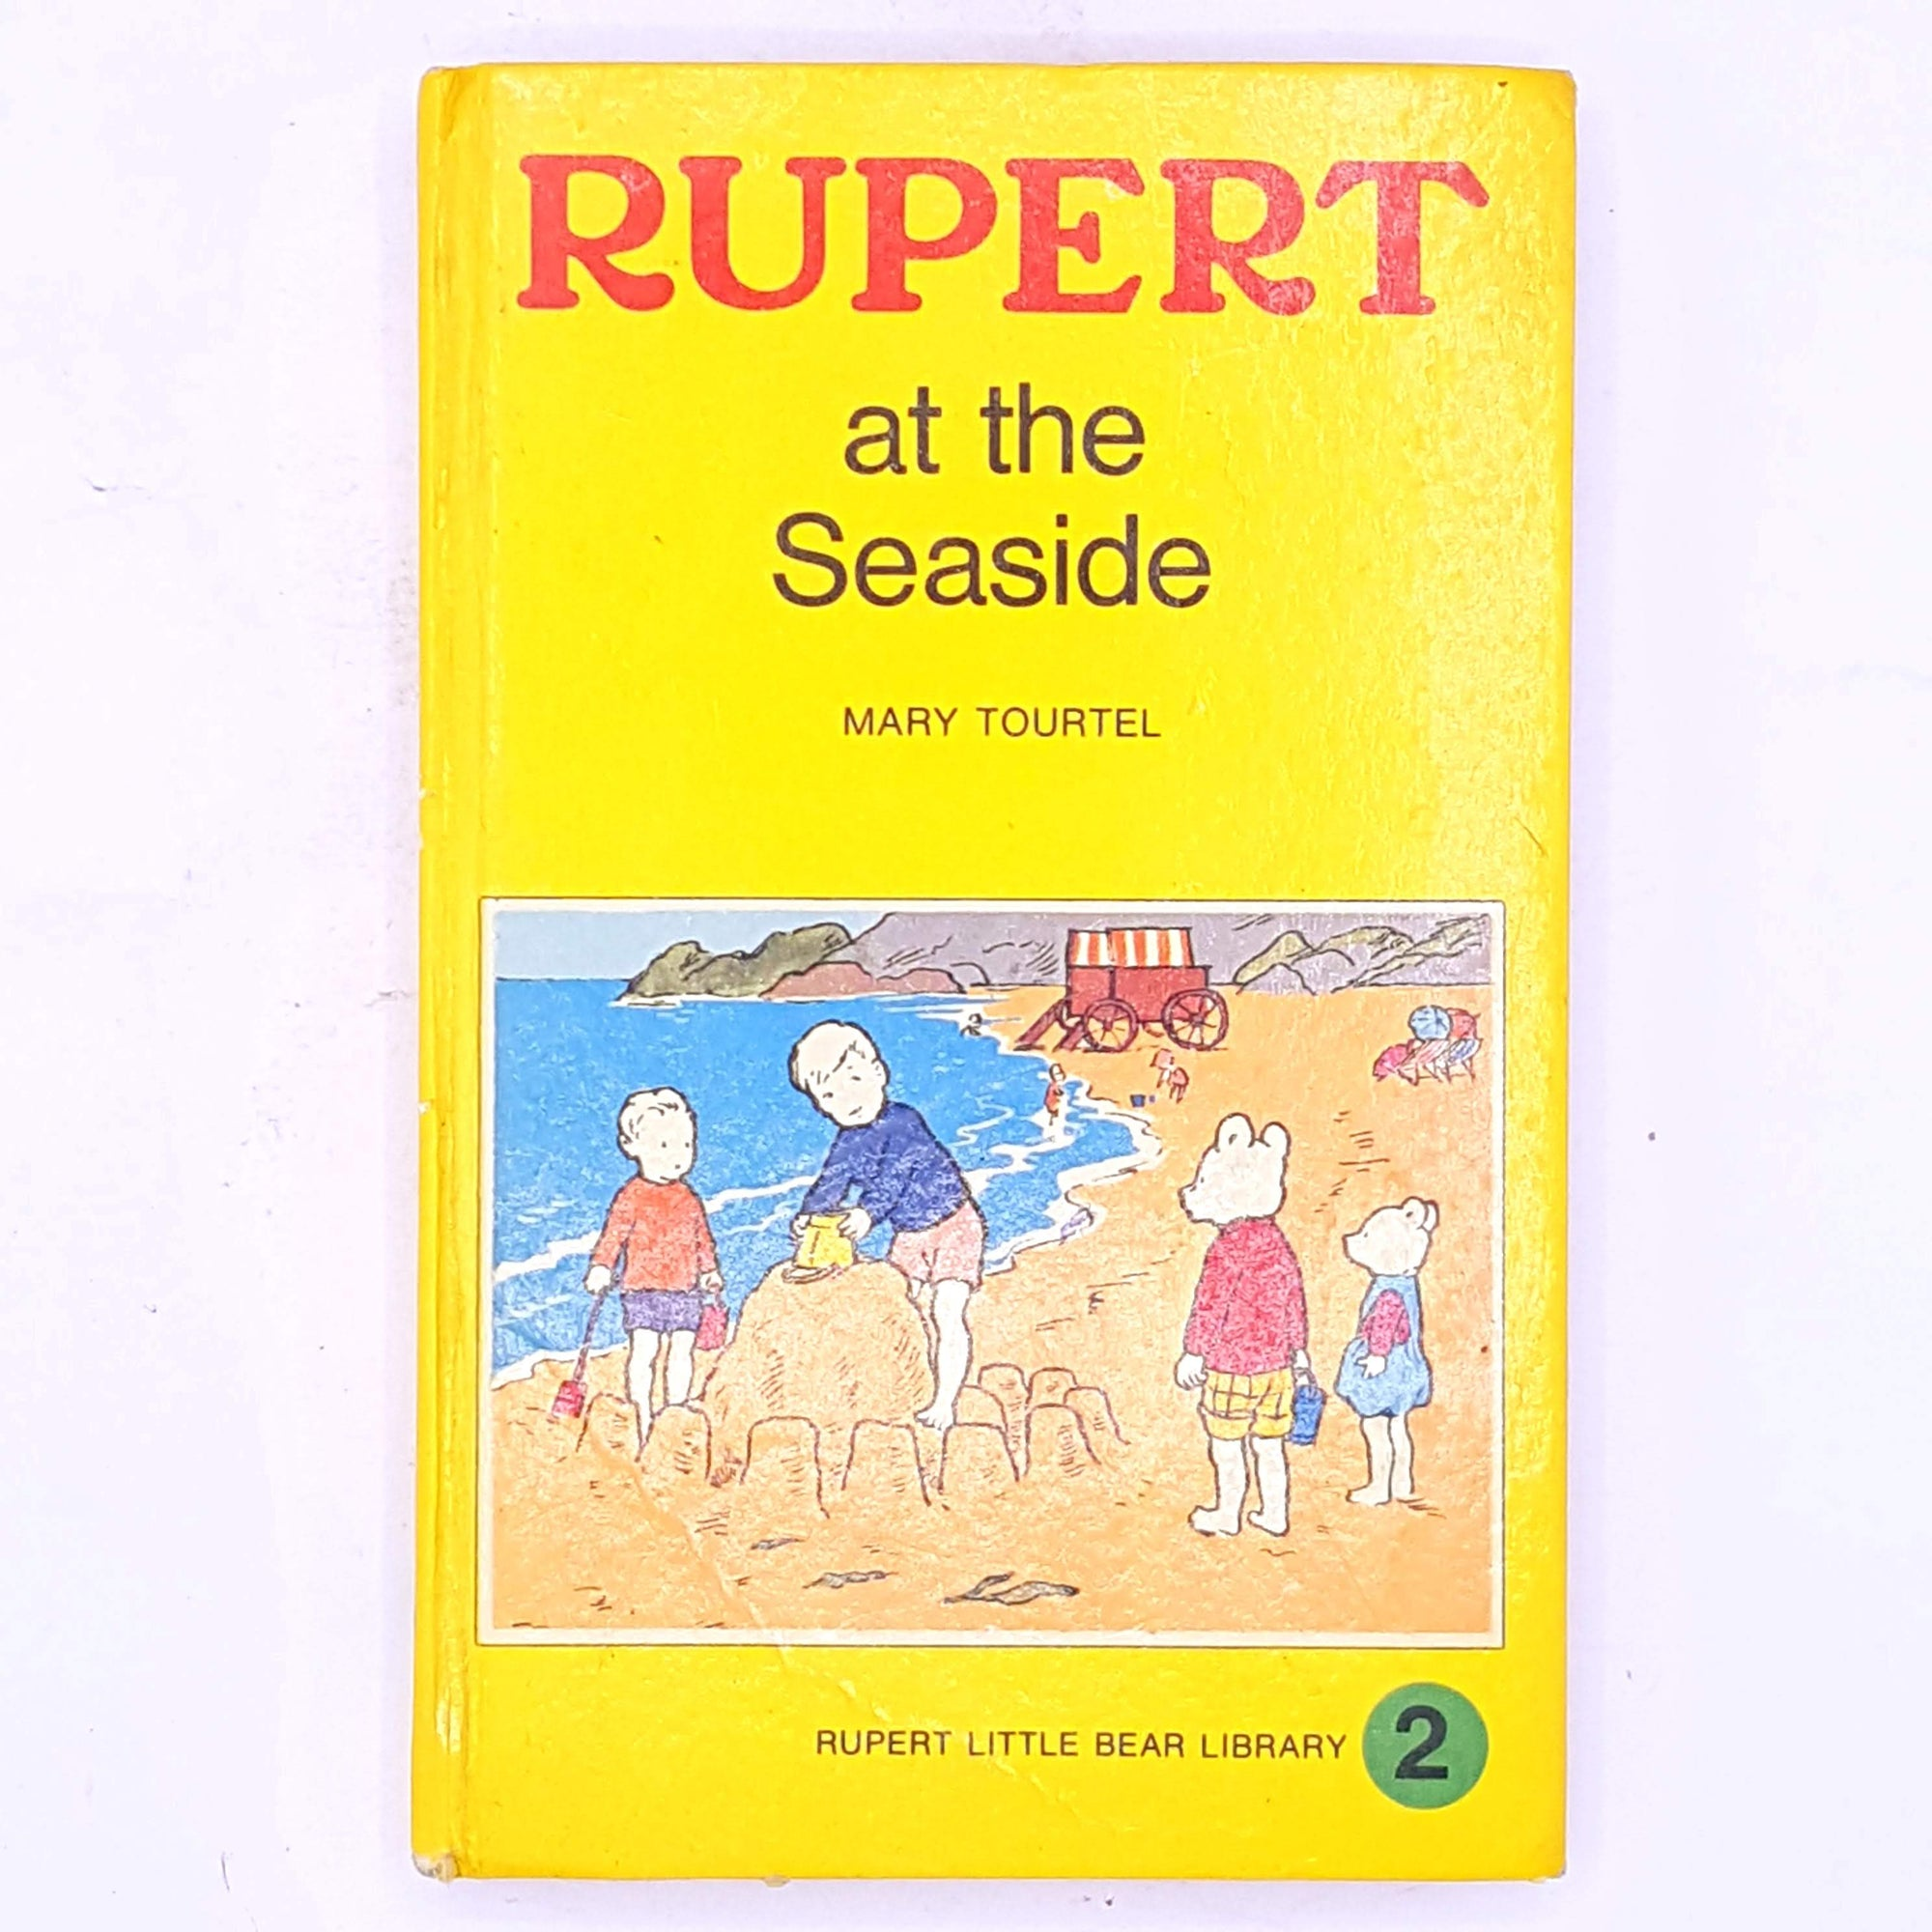 Rupert at the seaside Mary Tourtel